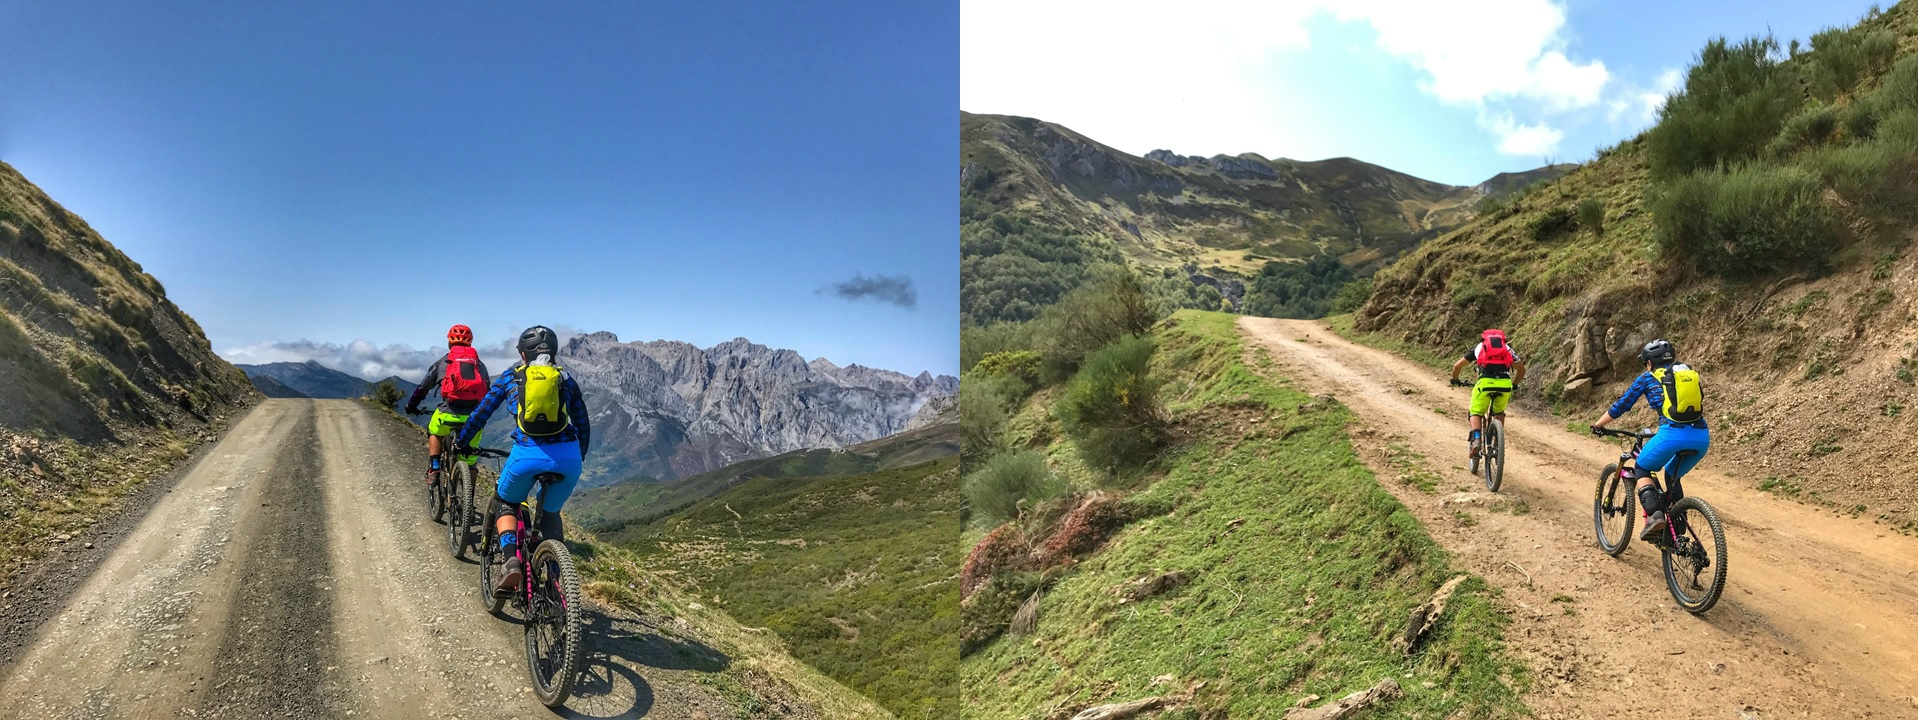 Picos de Europe mountain bike trails